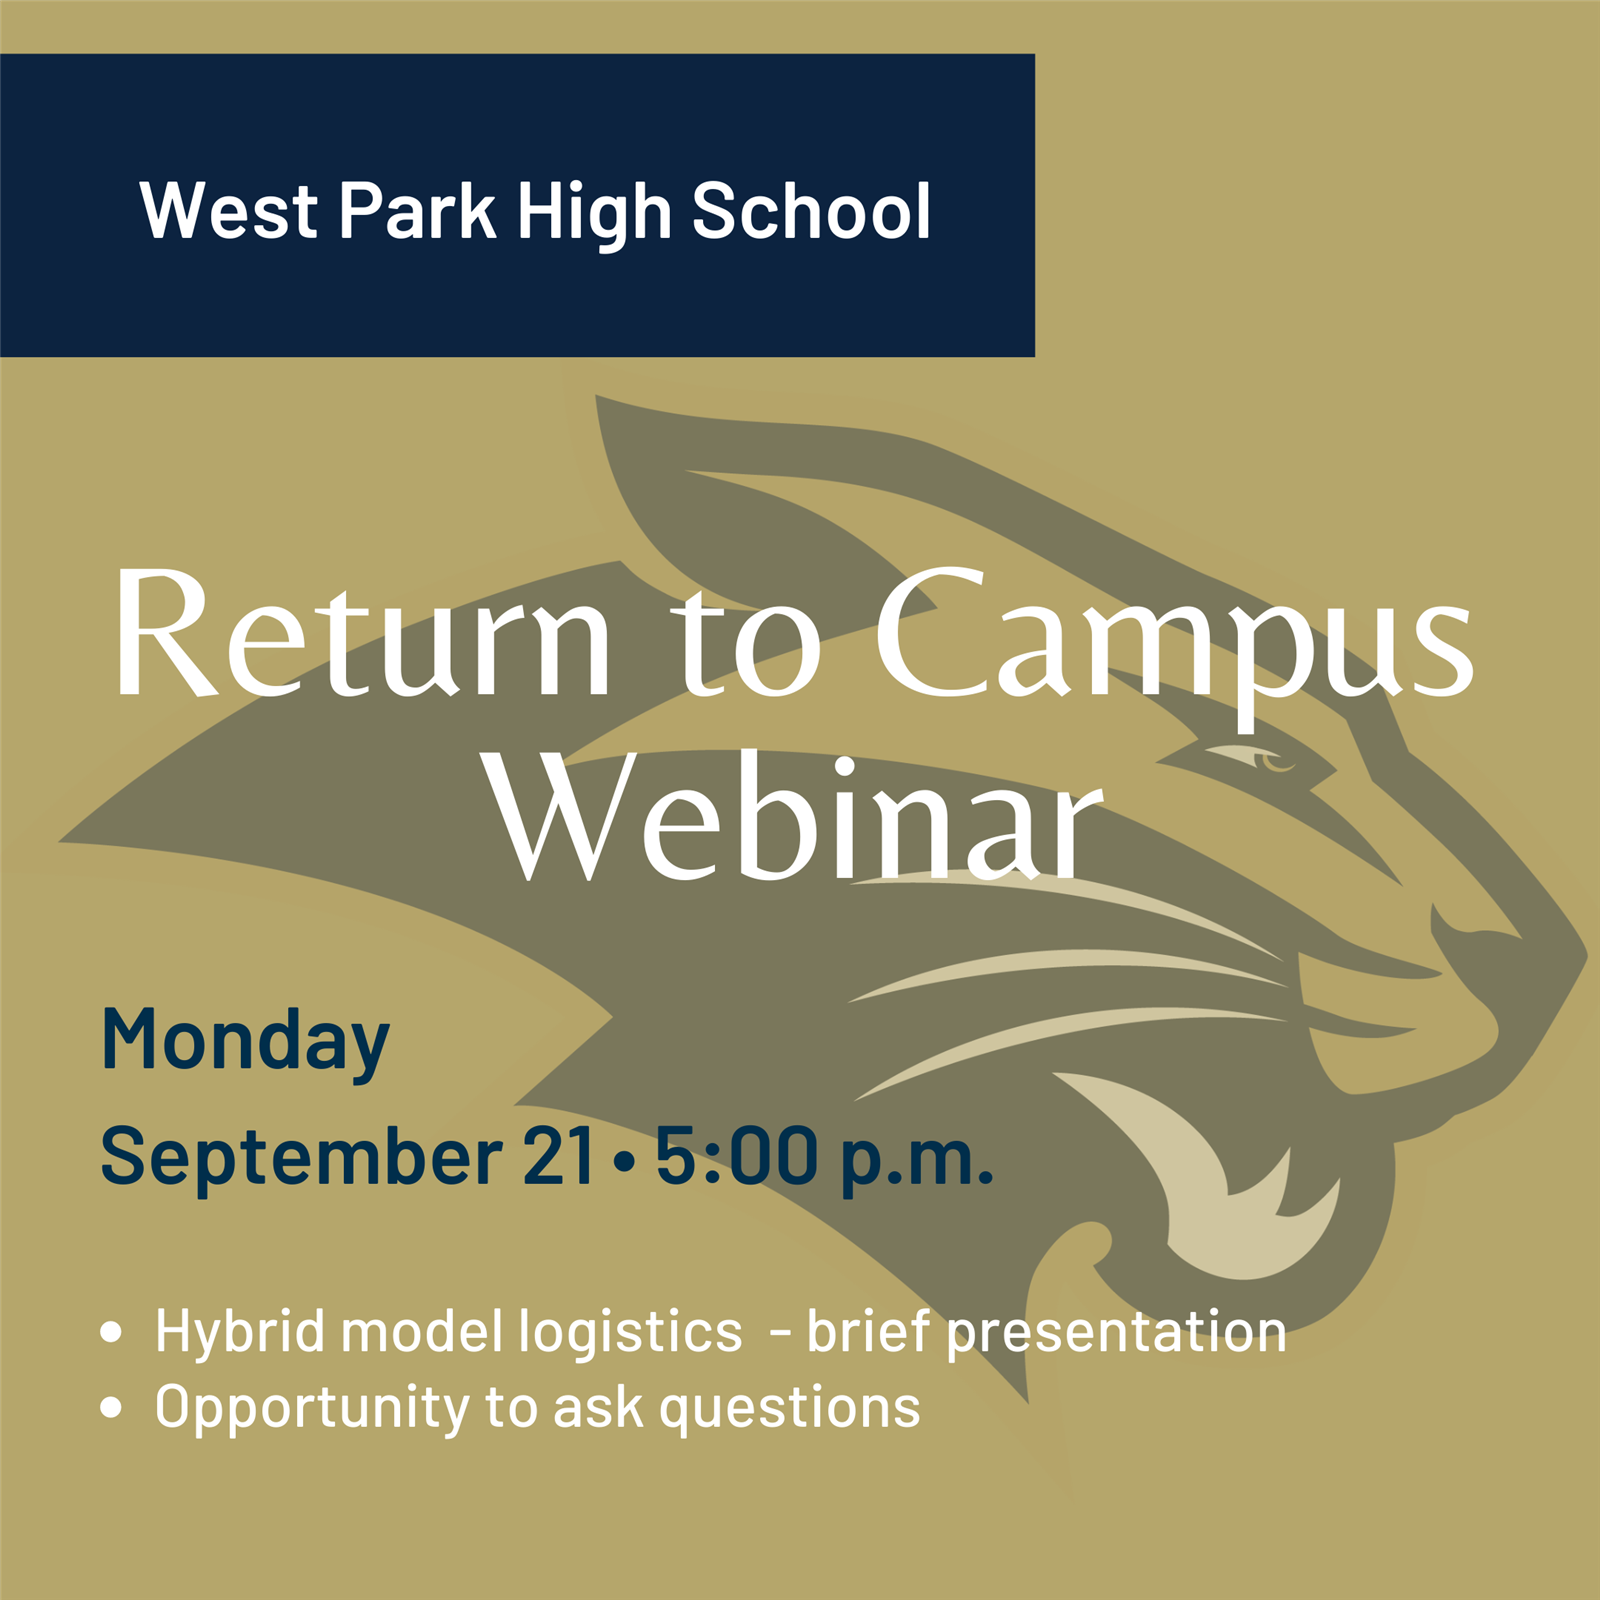 Return to Campus Webinar